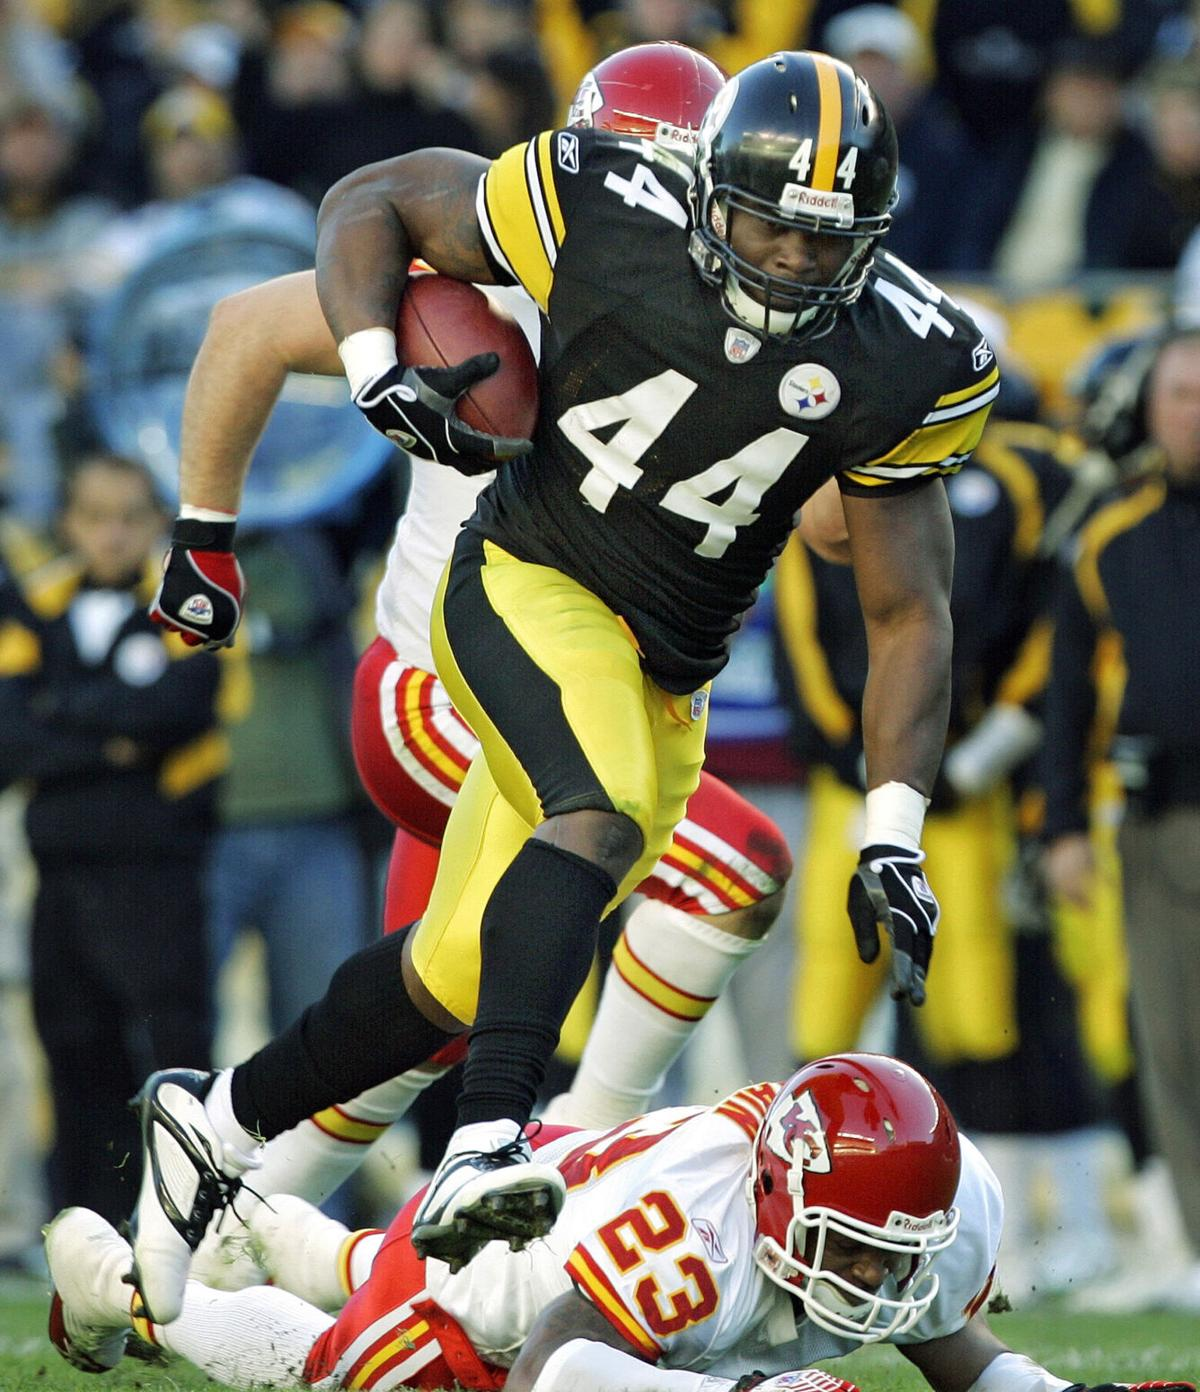 Pittsburgh Steelers running back Najeh Davenport steps over Kansas City Chiefs' Patrick Surtain on a 48- yard run in the second quarter, at Heinz Field in Pittsburgh, Pennsylvania, Sunday, October 15, 2006.